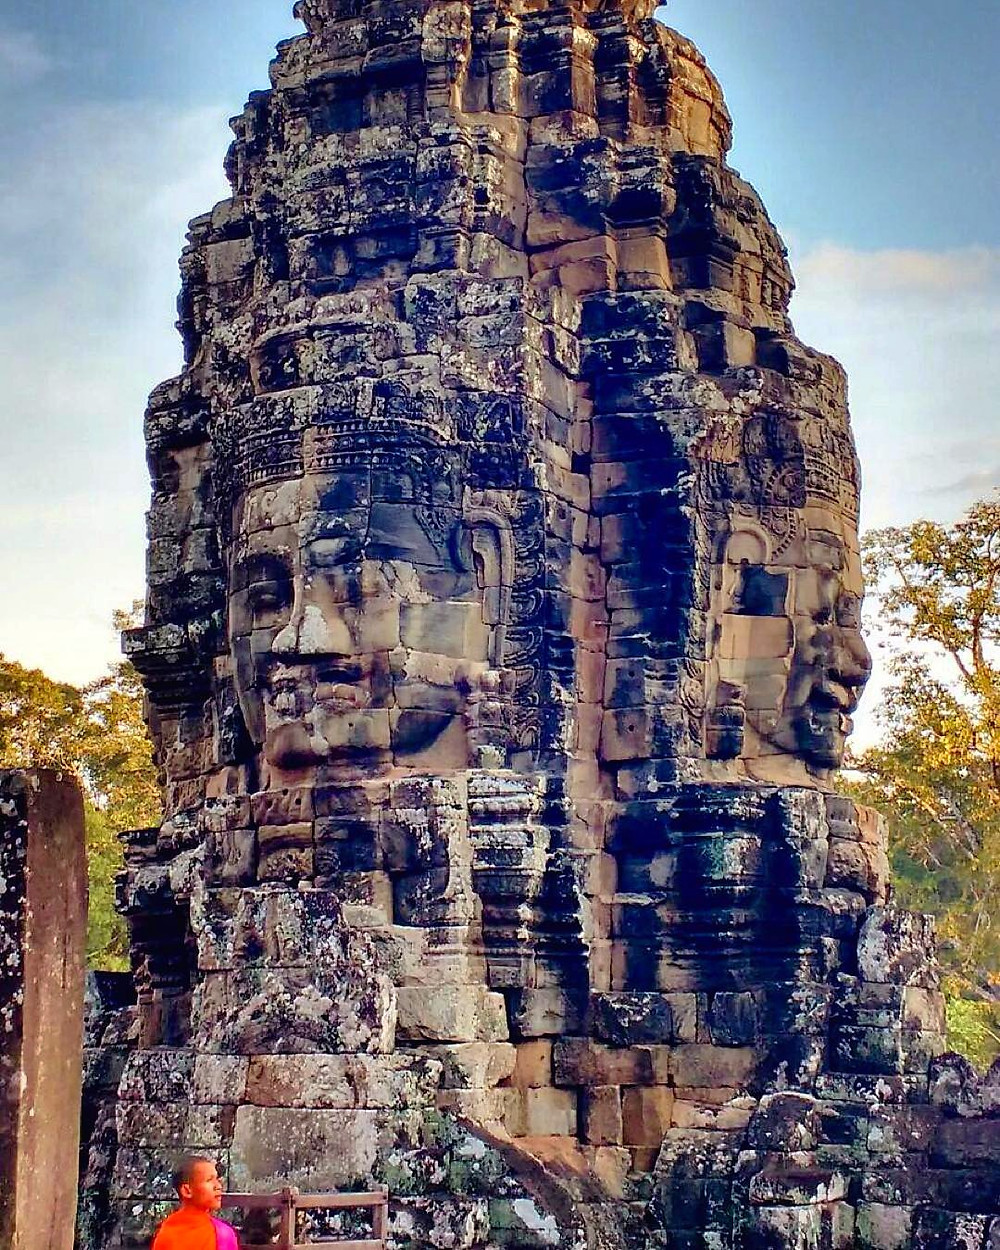 The Enigmatic Faces of Bayon